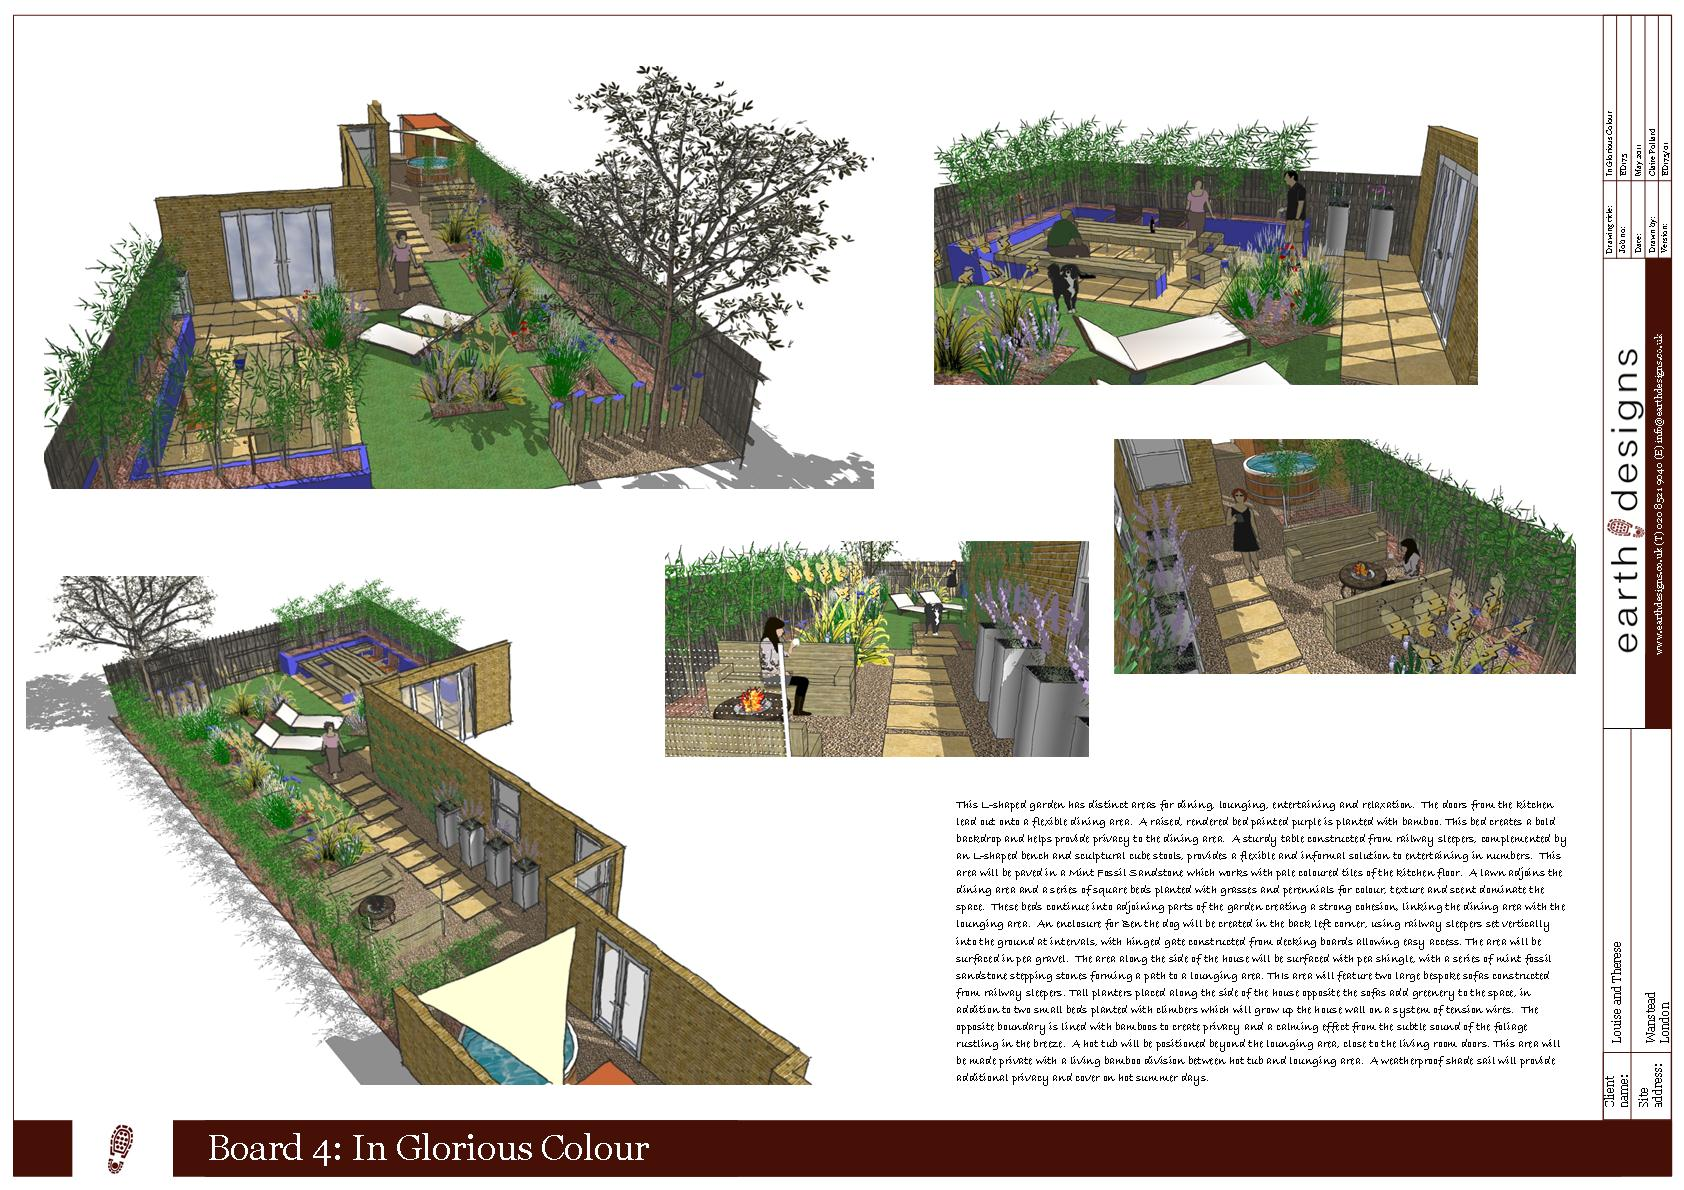 garden design london wanstead visuals - Garden Design London